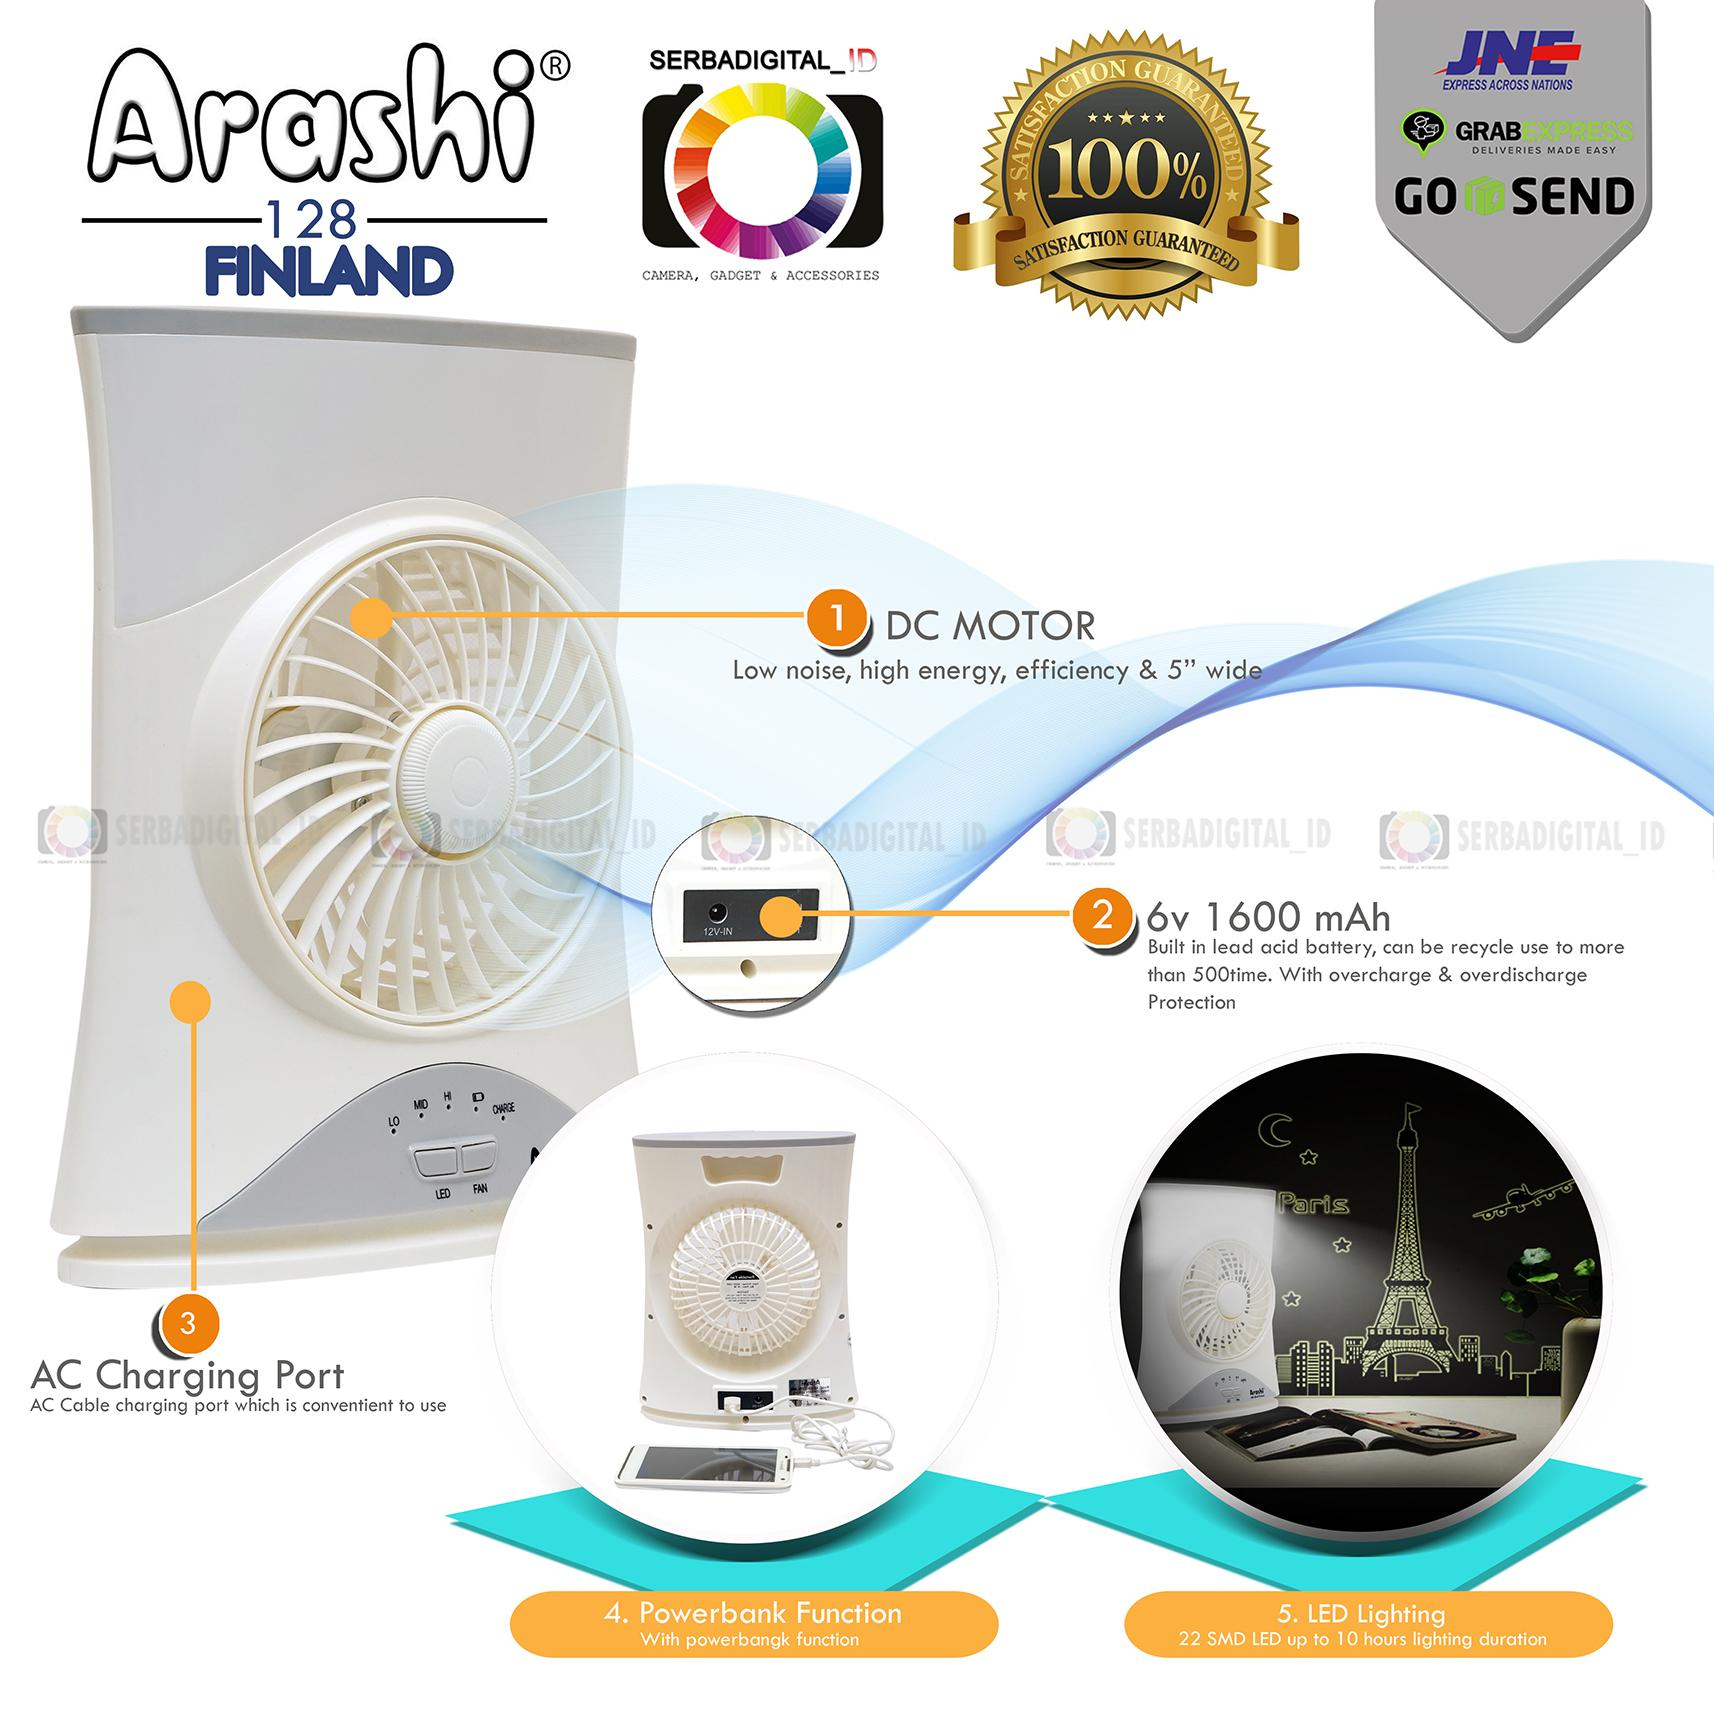 Kipas Angin/ Fan Mini Arashi AR-128 Emergency LED+FAN 5inch 22 SMD LED